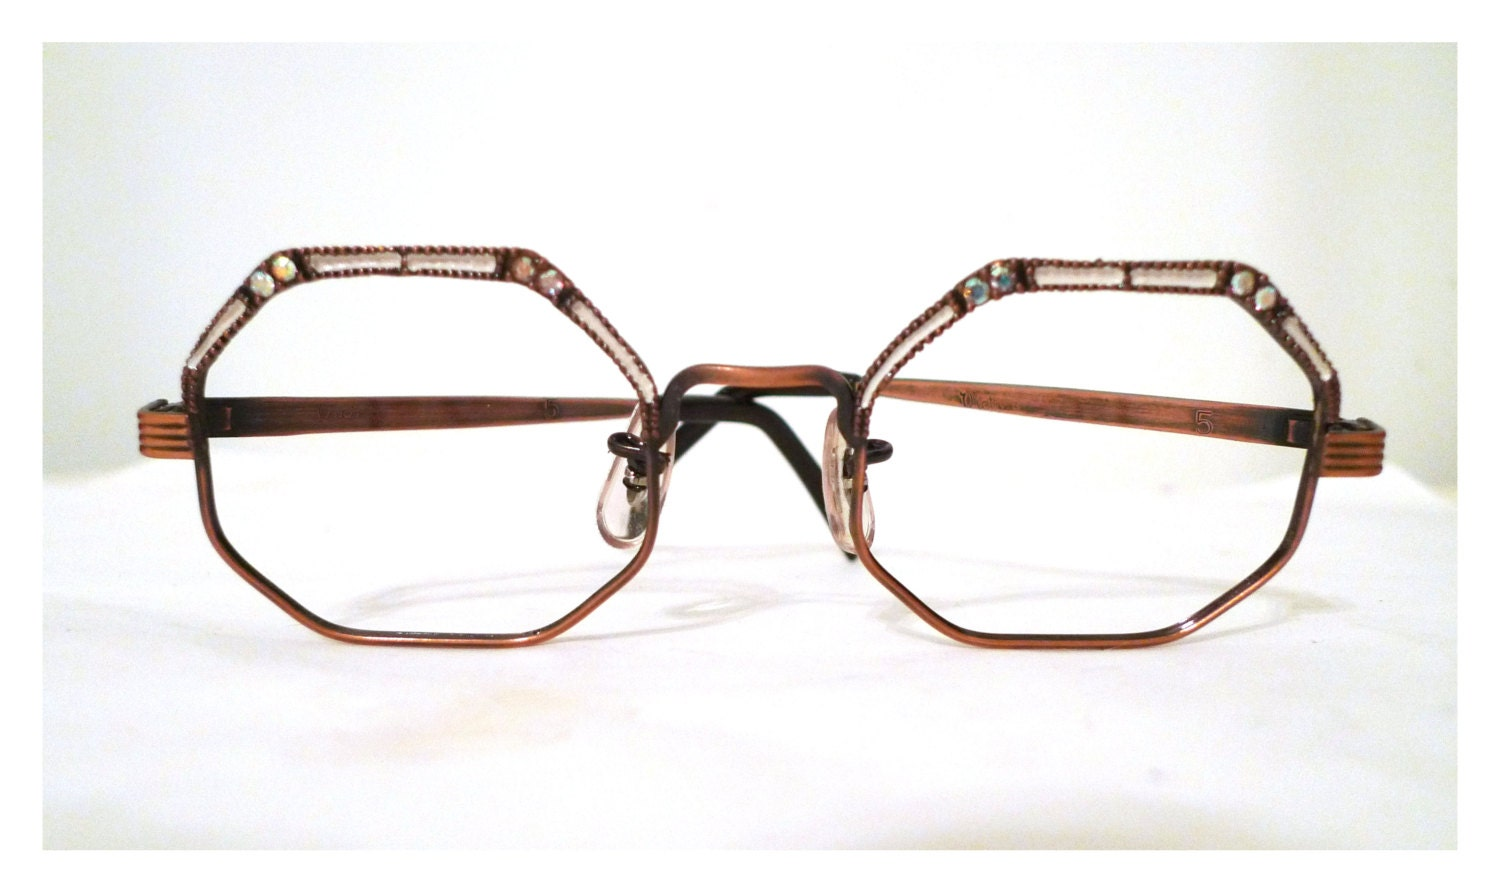 Designer Eyeglass Frames With Rhinestones : 12K GF Rhinestone Hexagonal Eyeglass Frames with Bronze